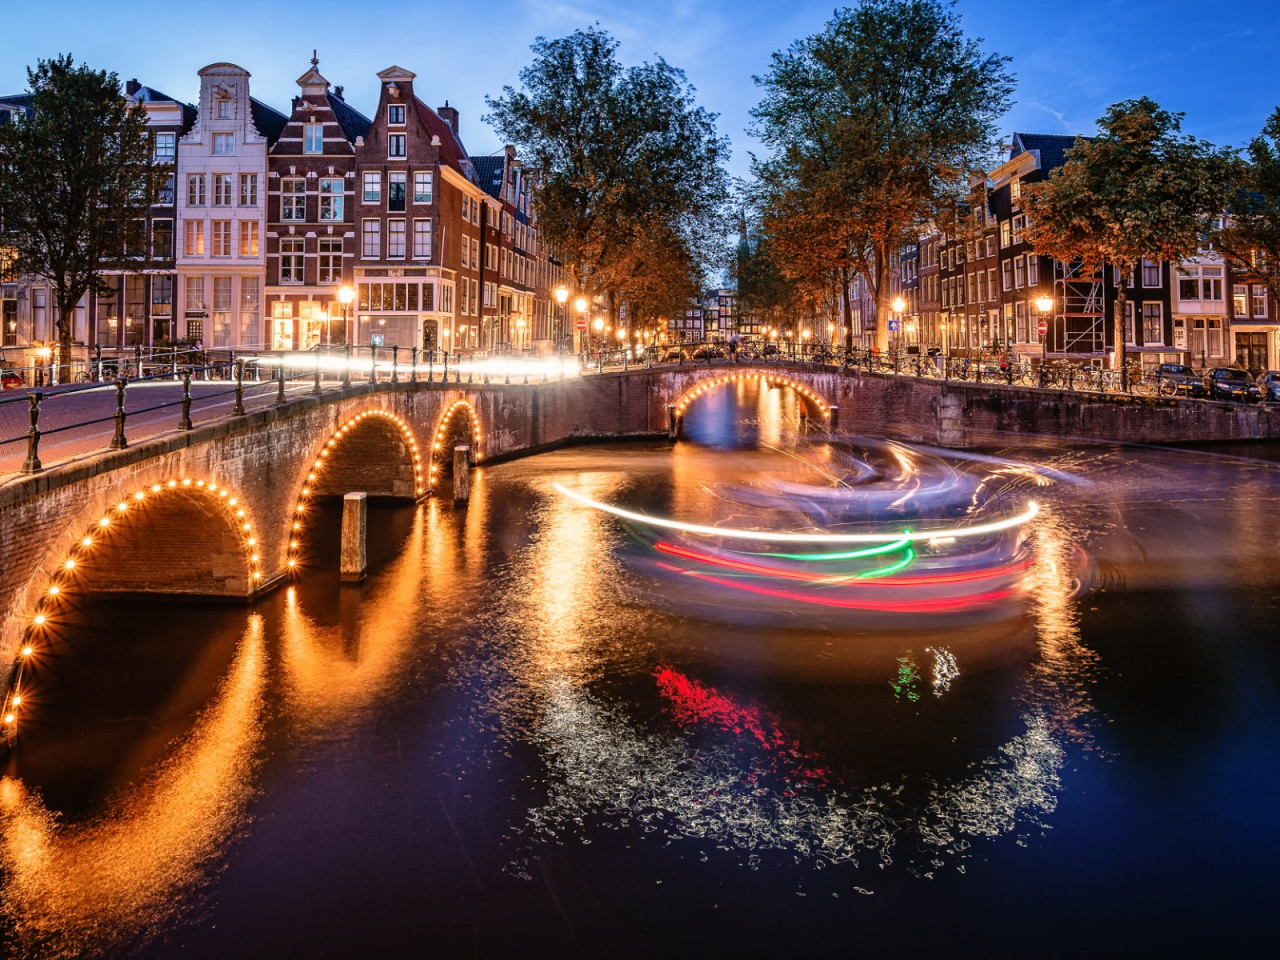 Amsterdam by night wallpaper 1280x960